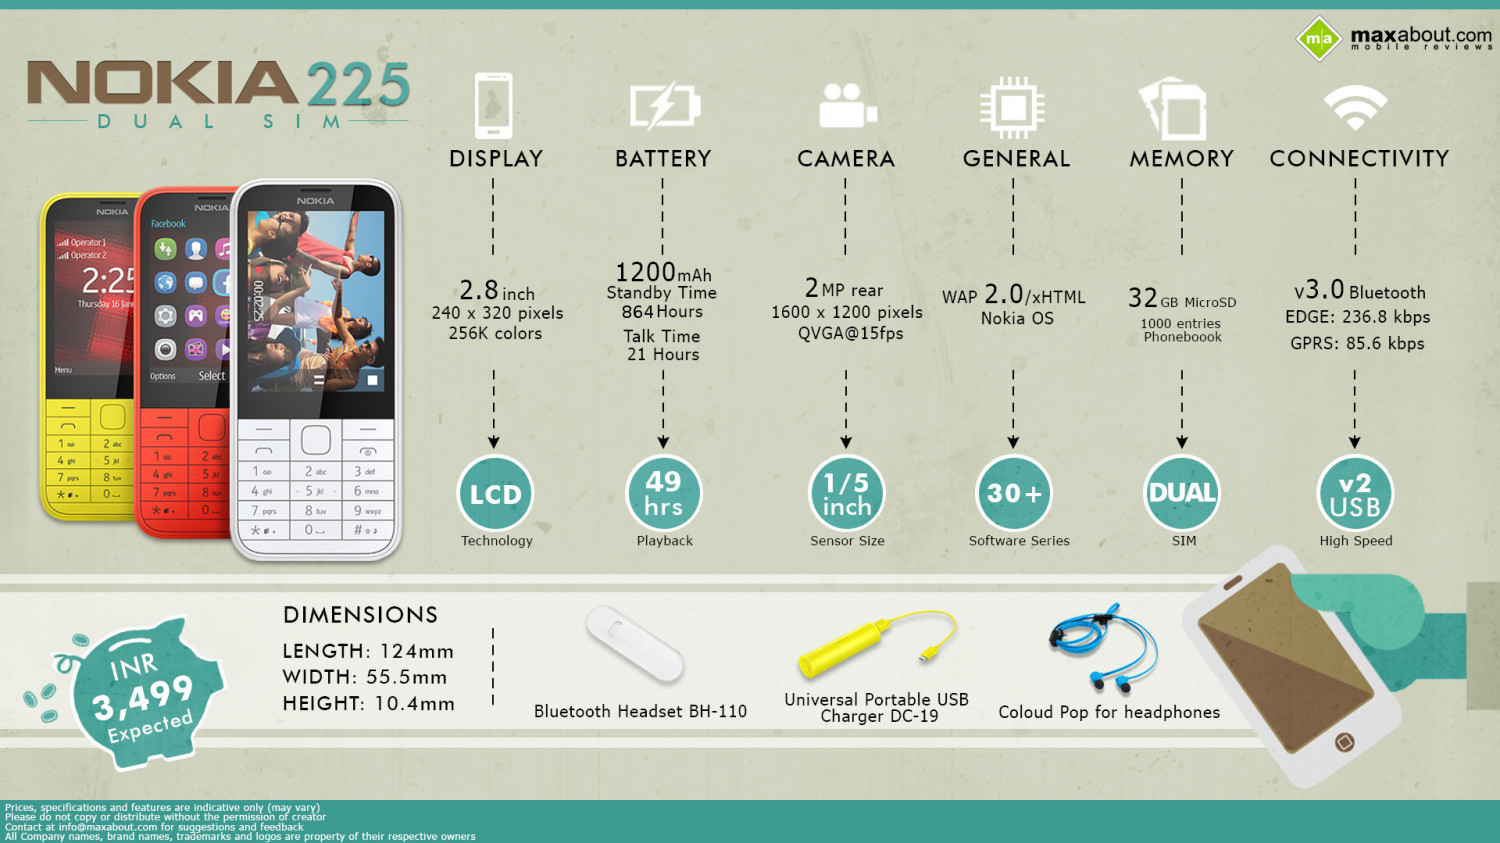 Must Know Facts about the Nokia 225 Dual SIM Infographic